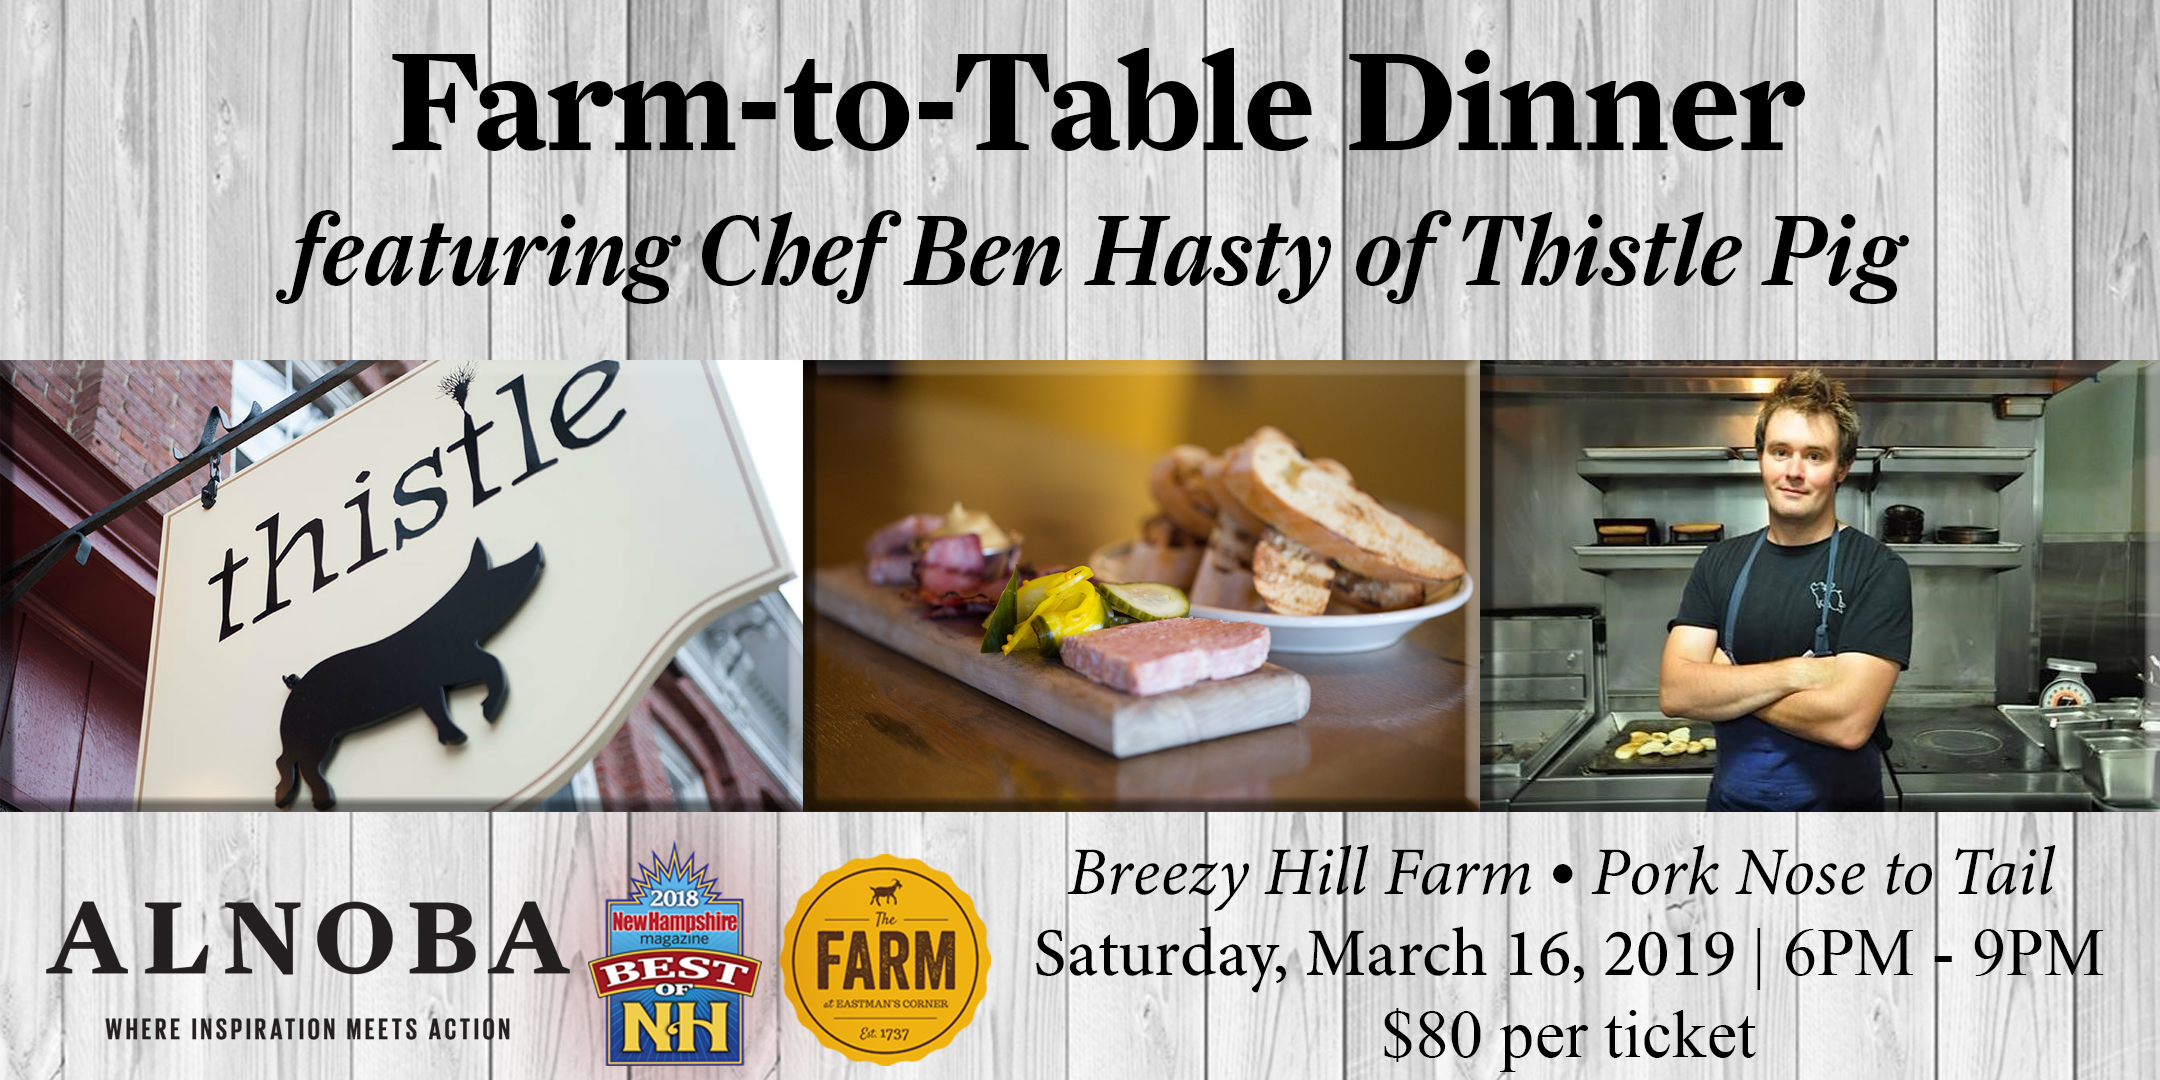 Farm-to-Table Dinner ft. Chef Ben Hasty of Thistle Pig